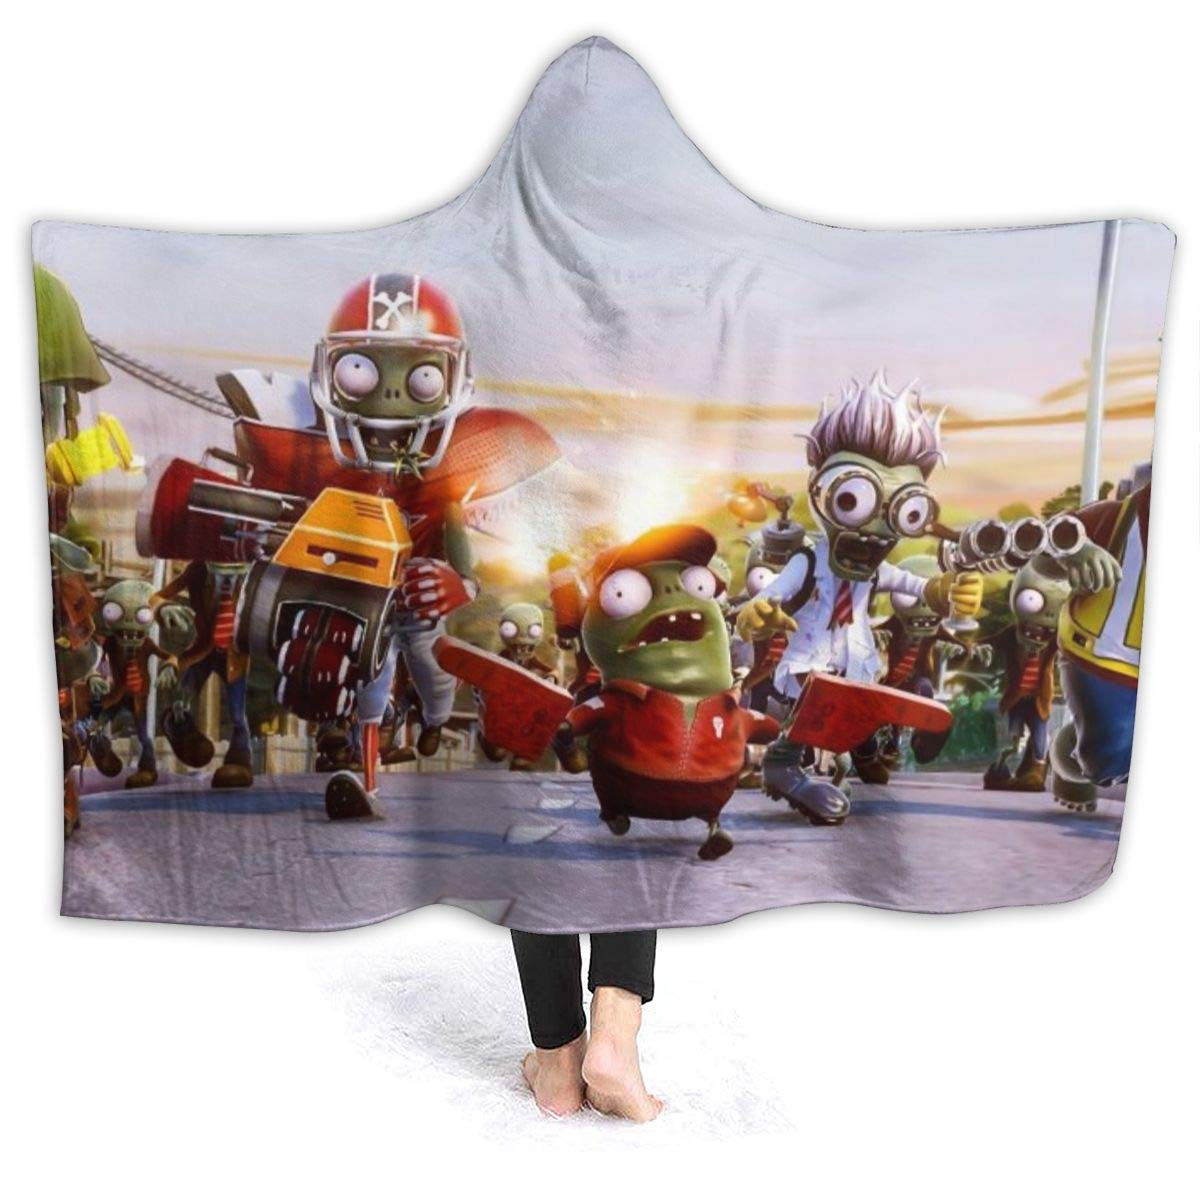 Spring Hooded Blankets for Kids Teens, PVZ 2 Garden Warfare Game Poster Wearable Blankets for Christmas, Camping, Better Sleep, All Seasons Large Hoodie Cloak